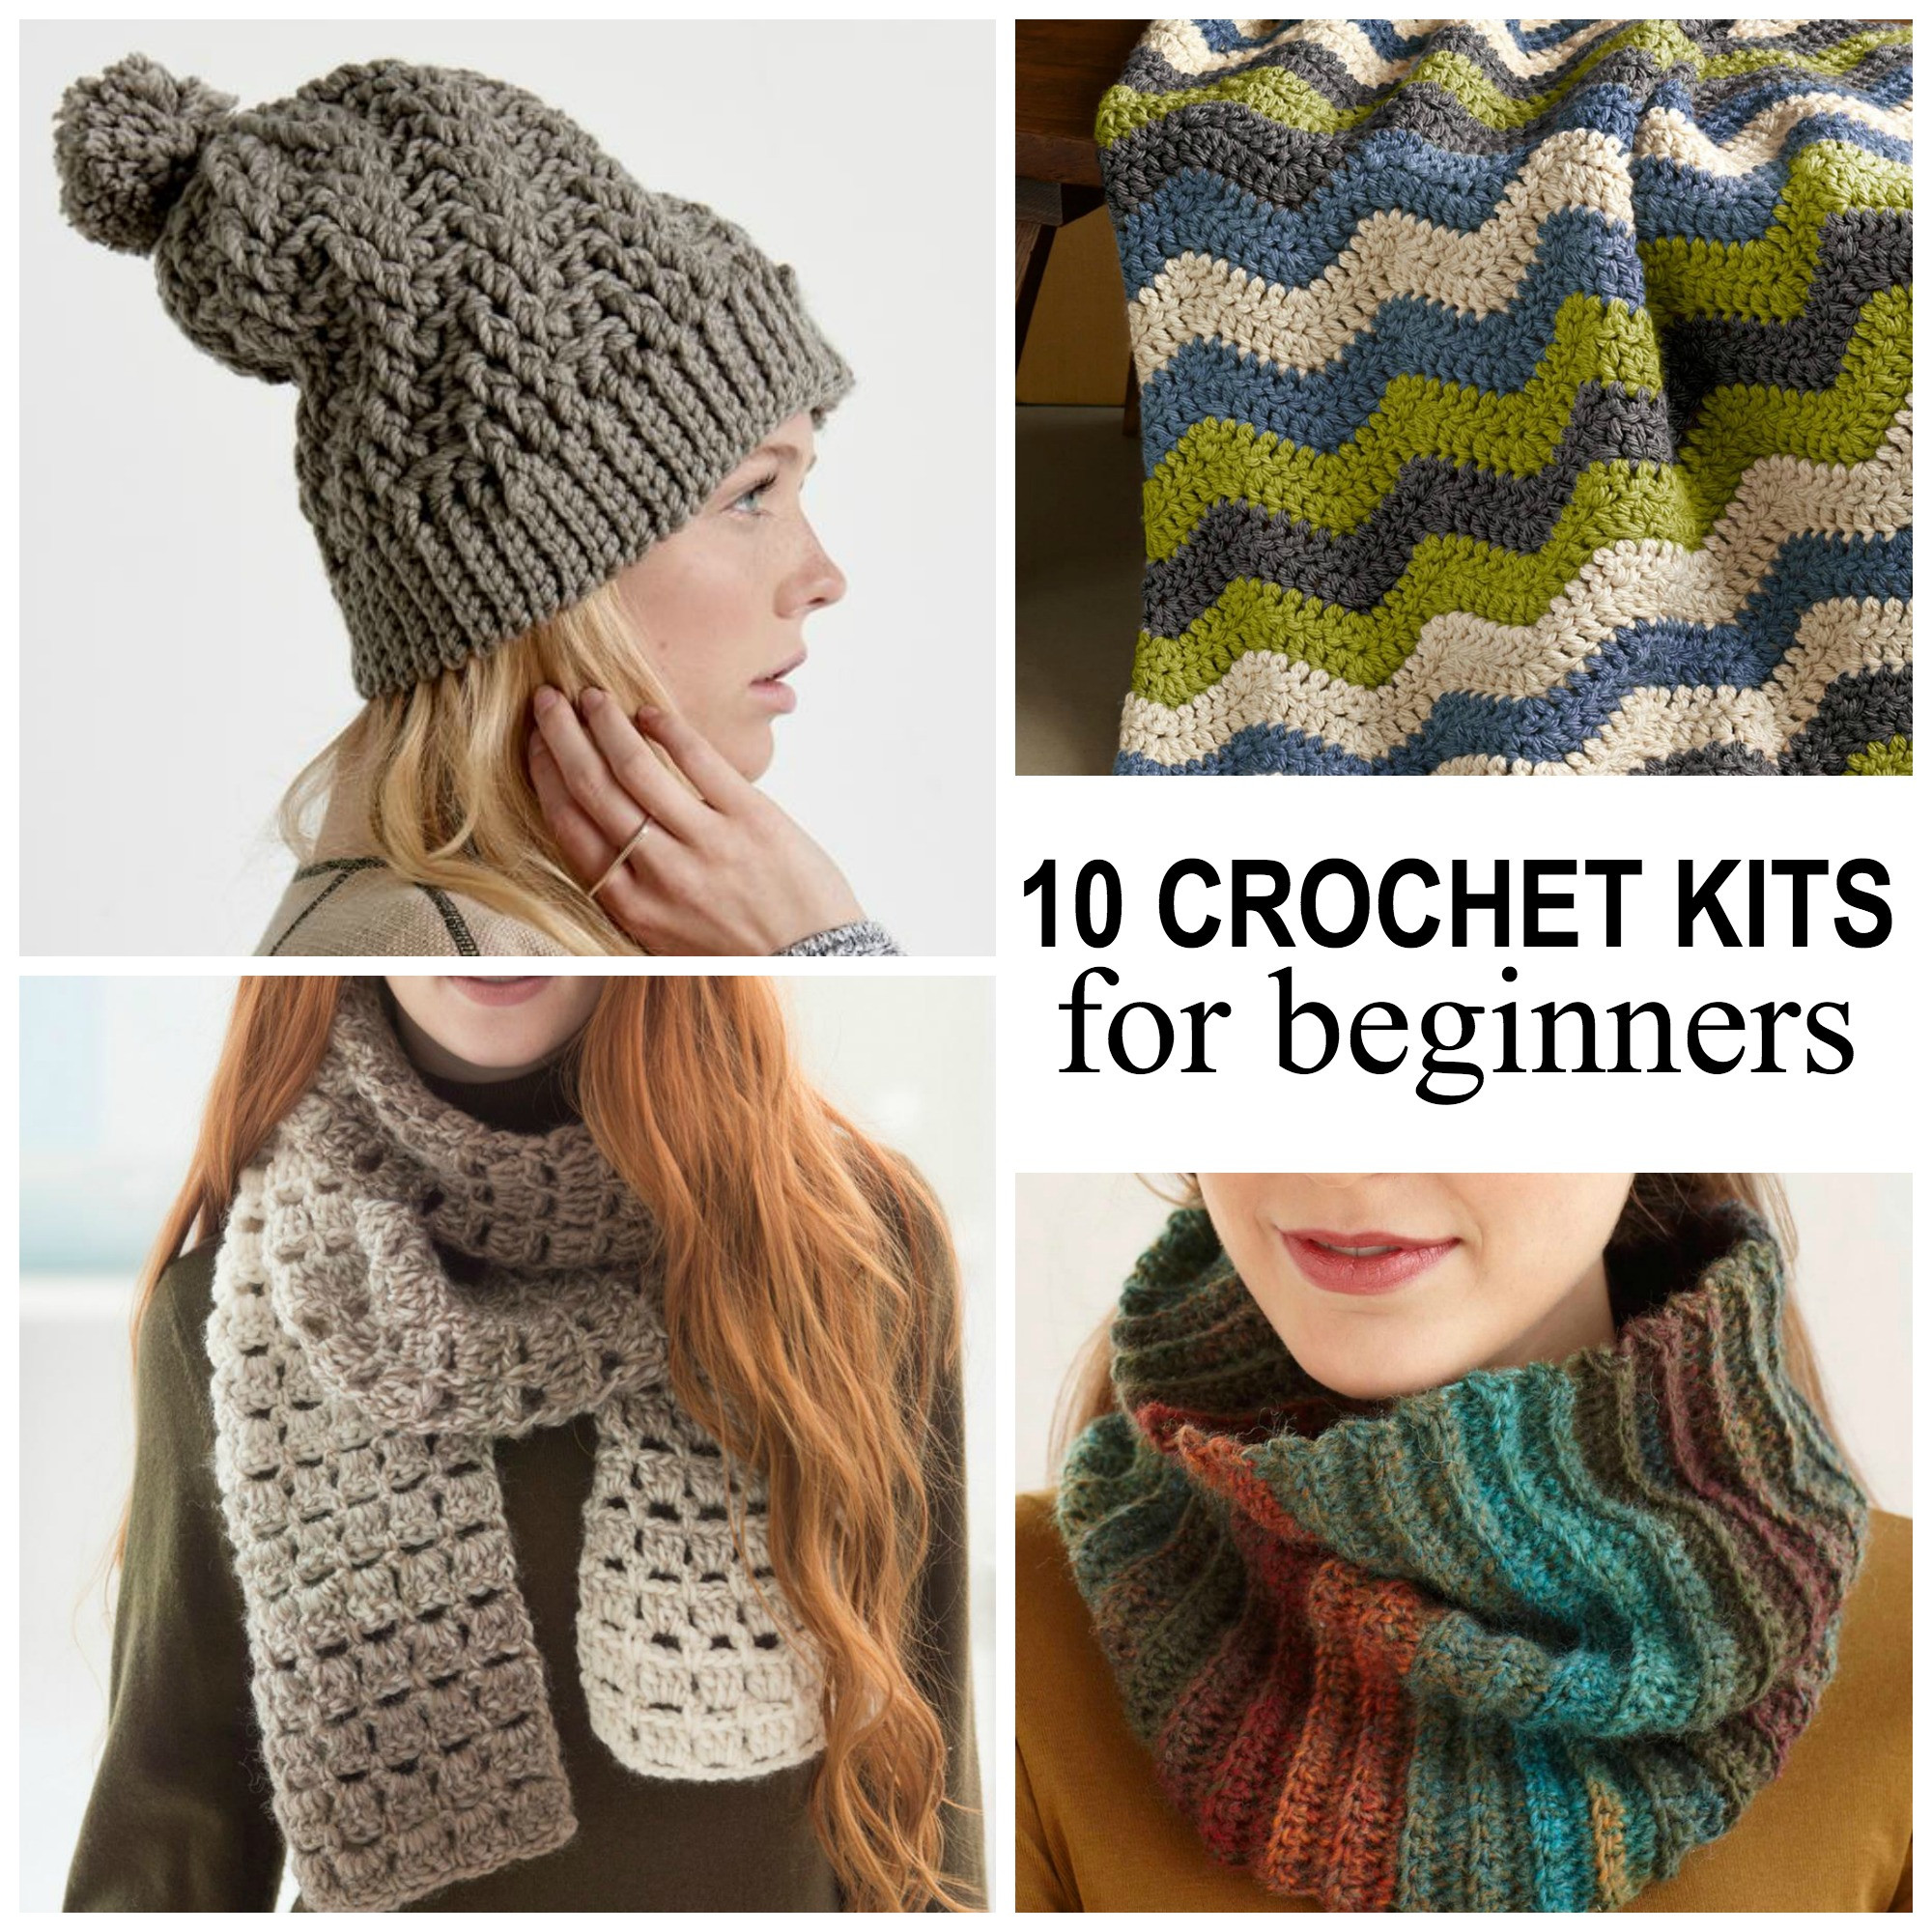 Free Crochet Patterns for Beginners New Printable Crochet Patterns for Beginners Of Luxury 40 Images Free Crochet Patterns for Beginners